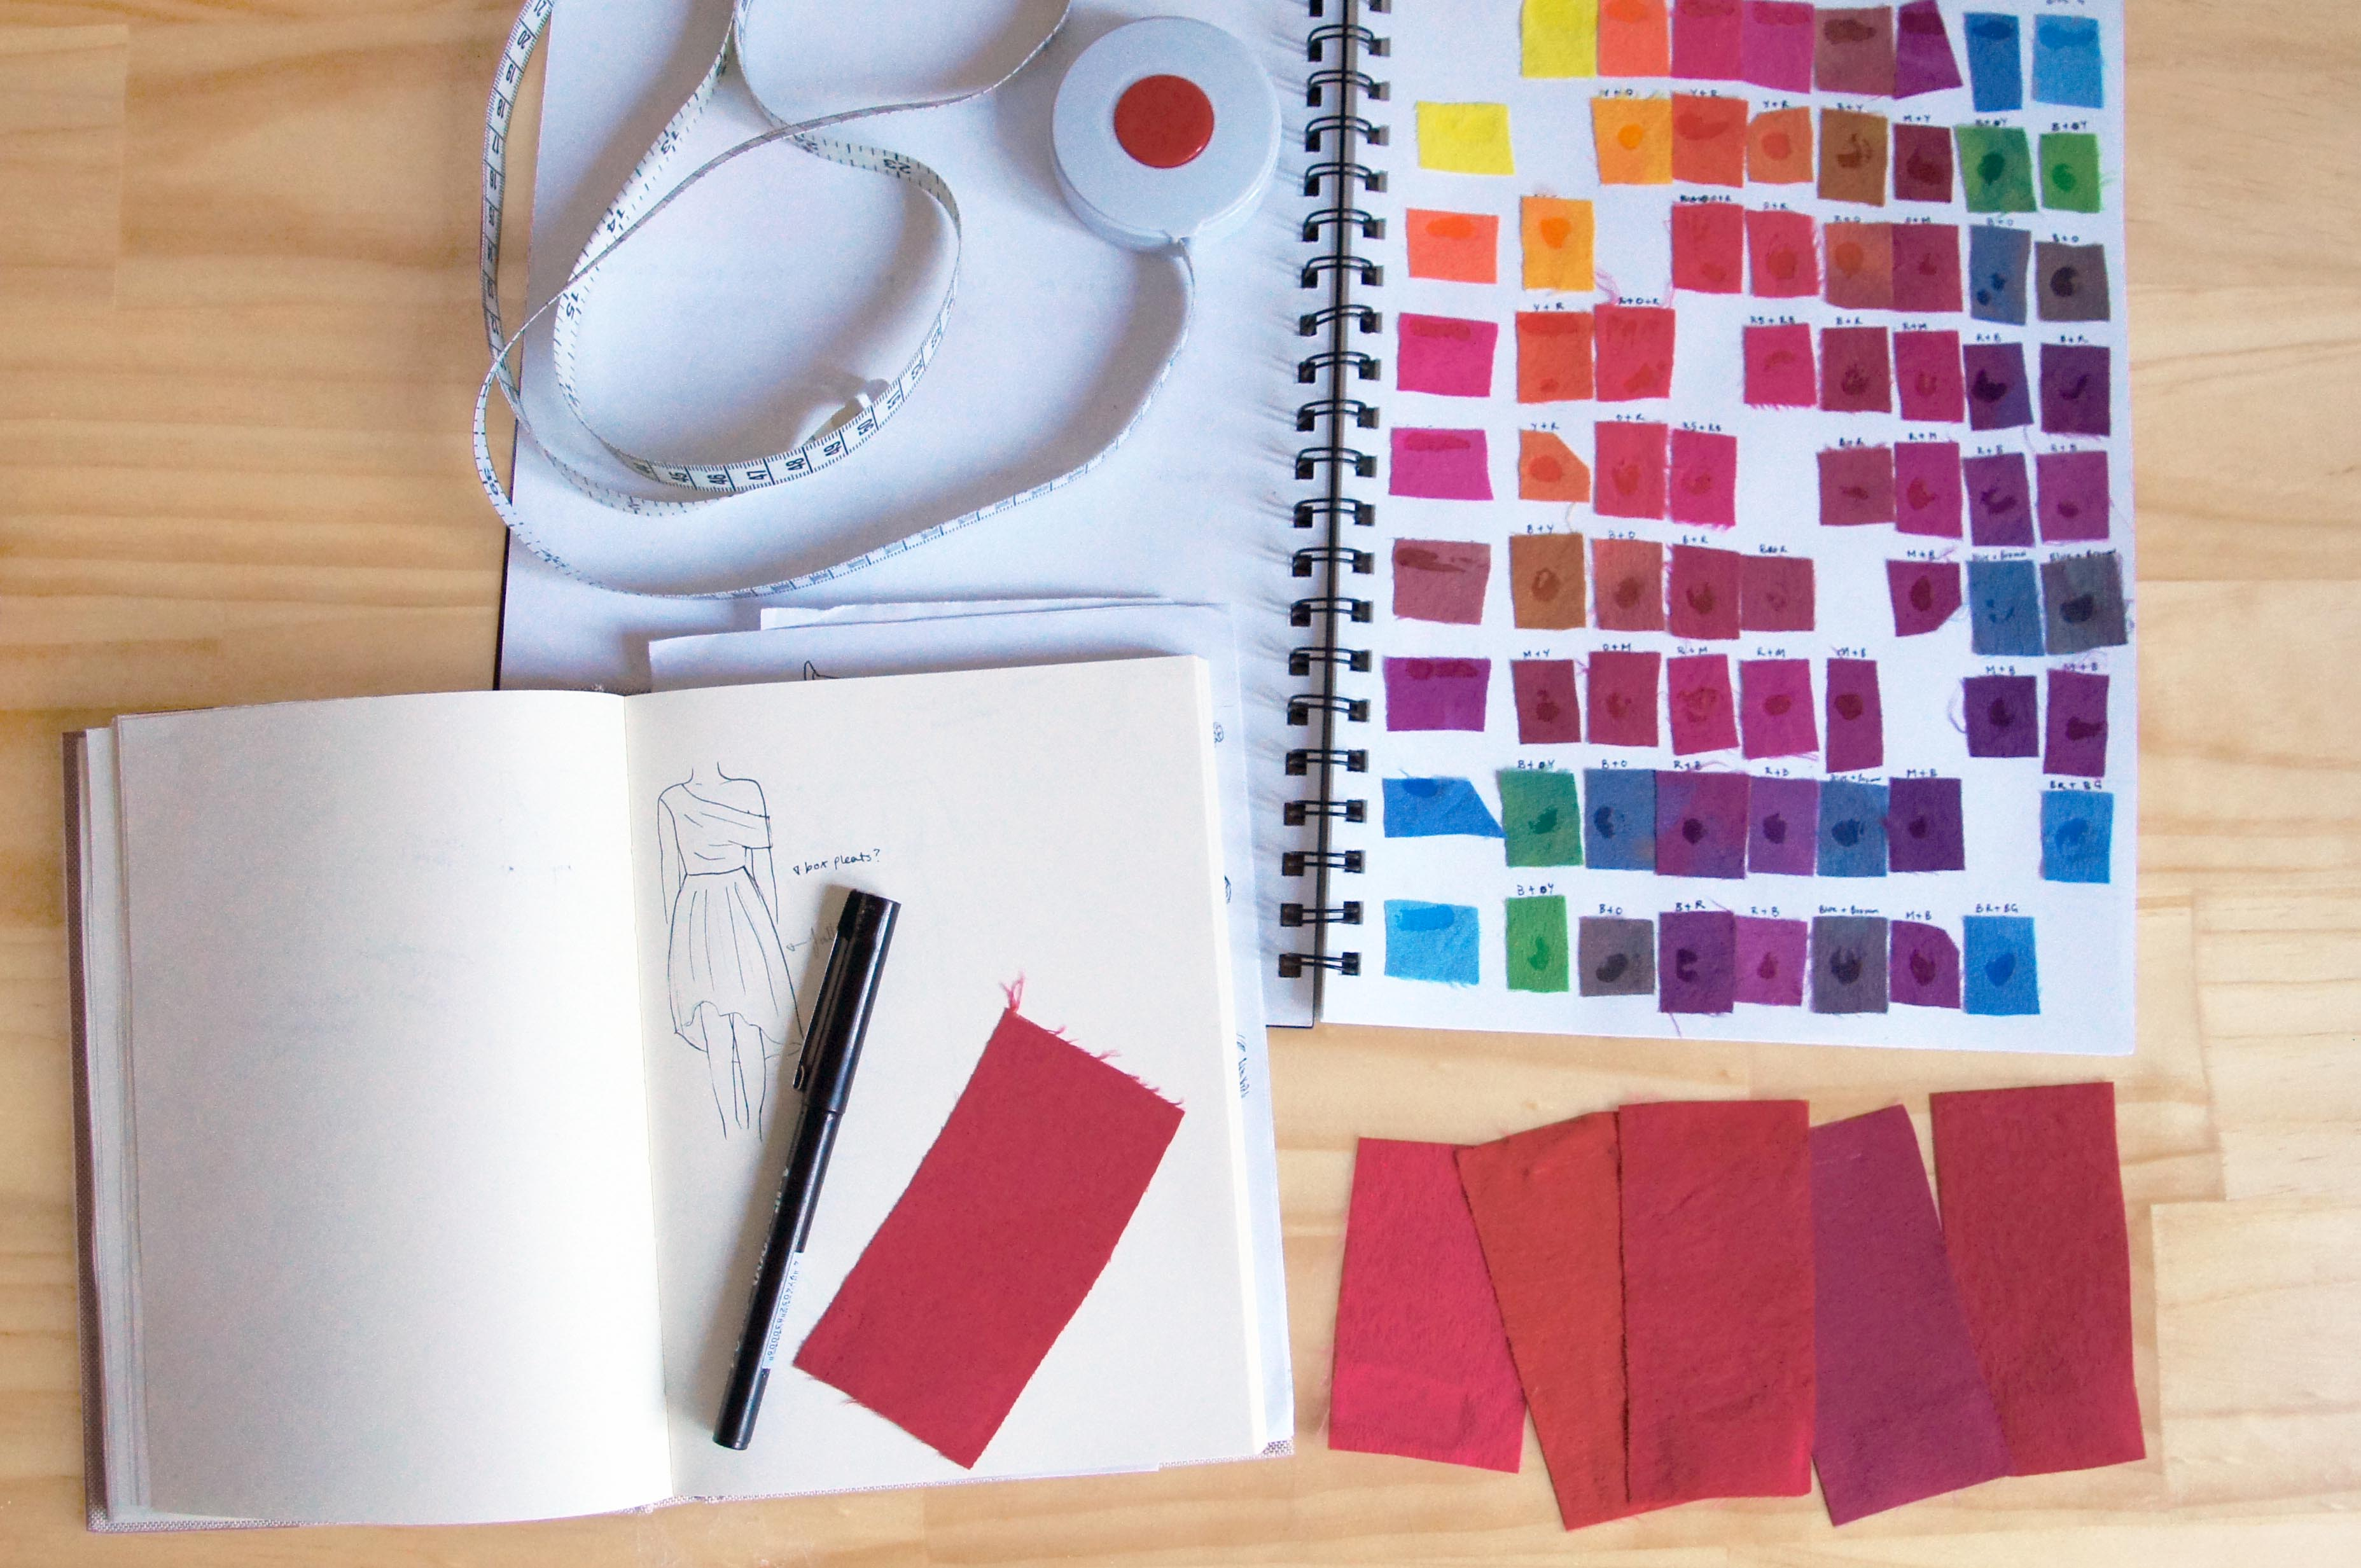 photo of fabric swatches and design sketch book